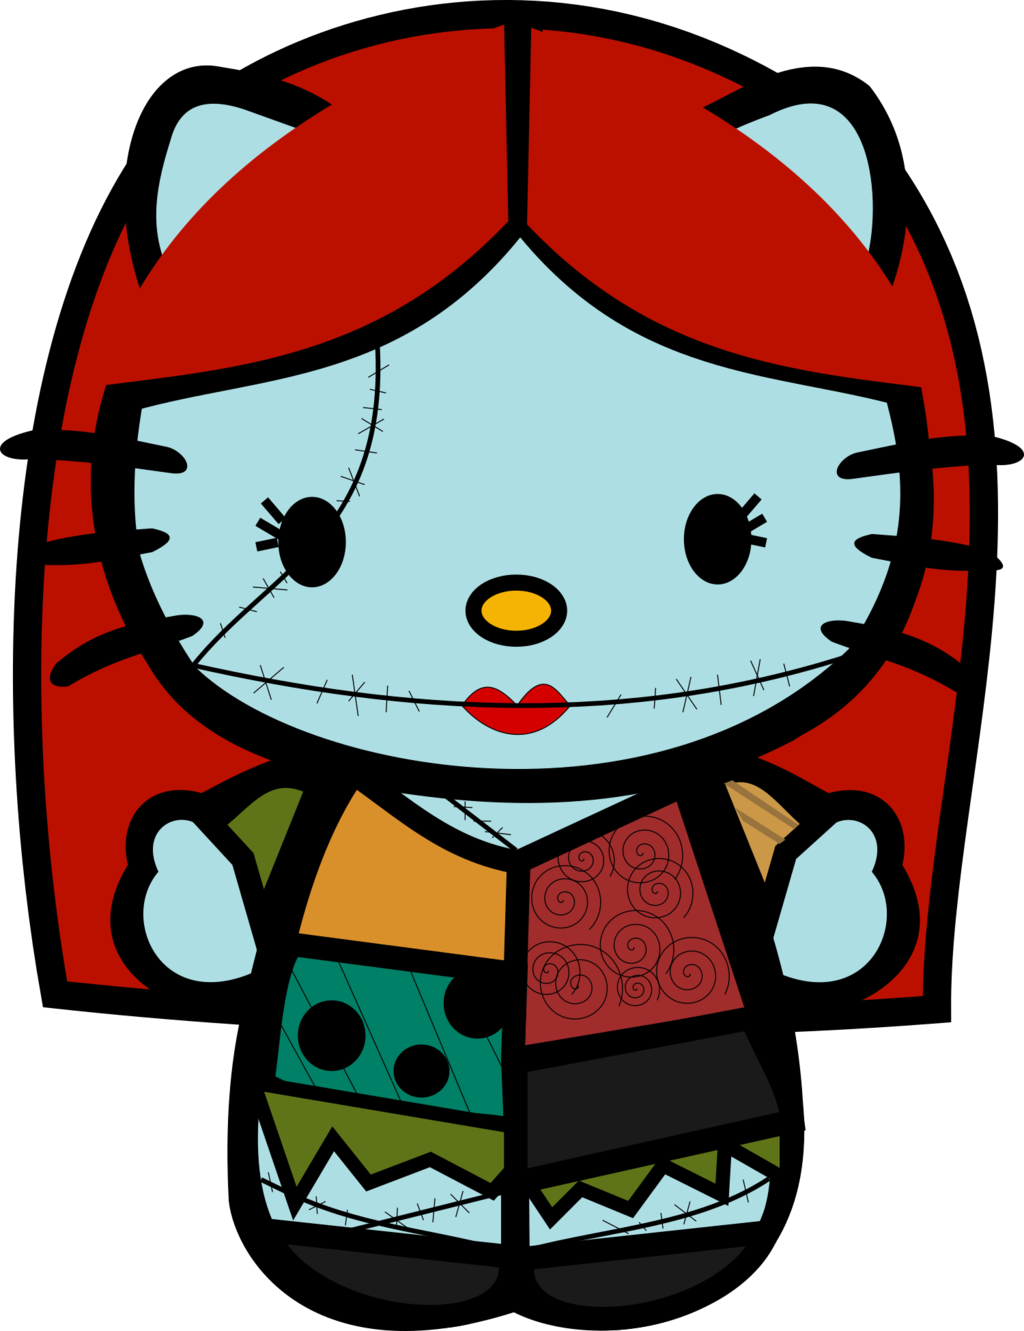 Dj cat clipart royalty free HELLO KITTY | Hello Kitty | Pinterest | Hello kitty, Kitty and Sanrio royalty free